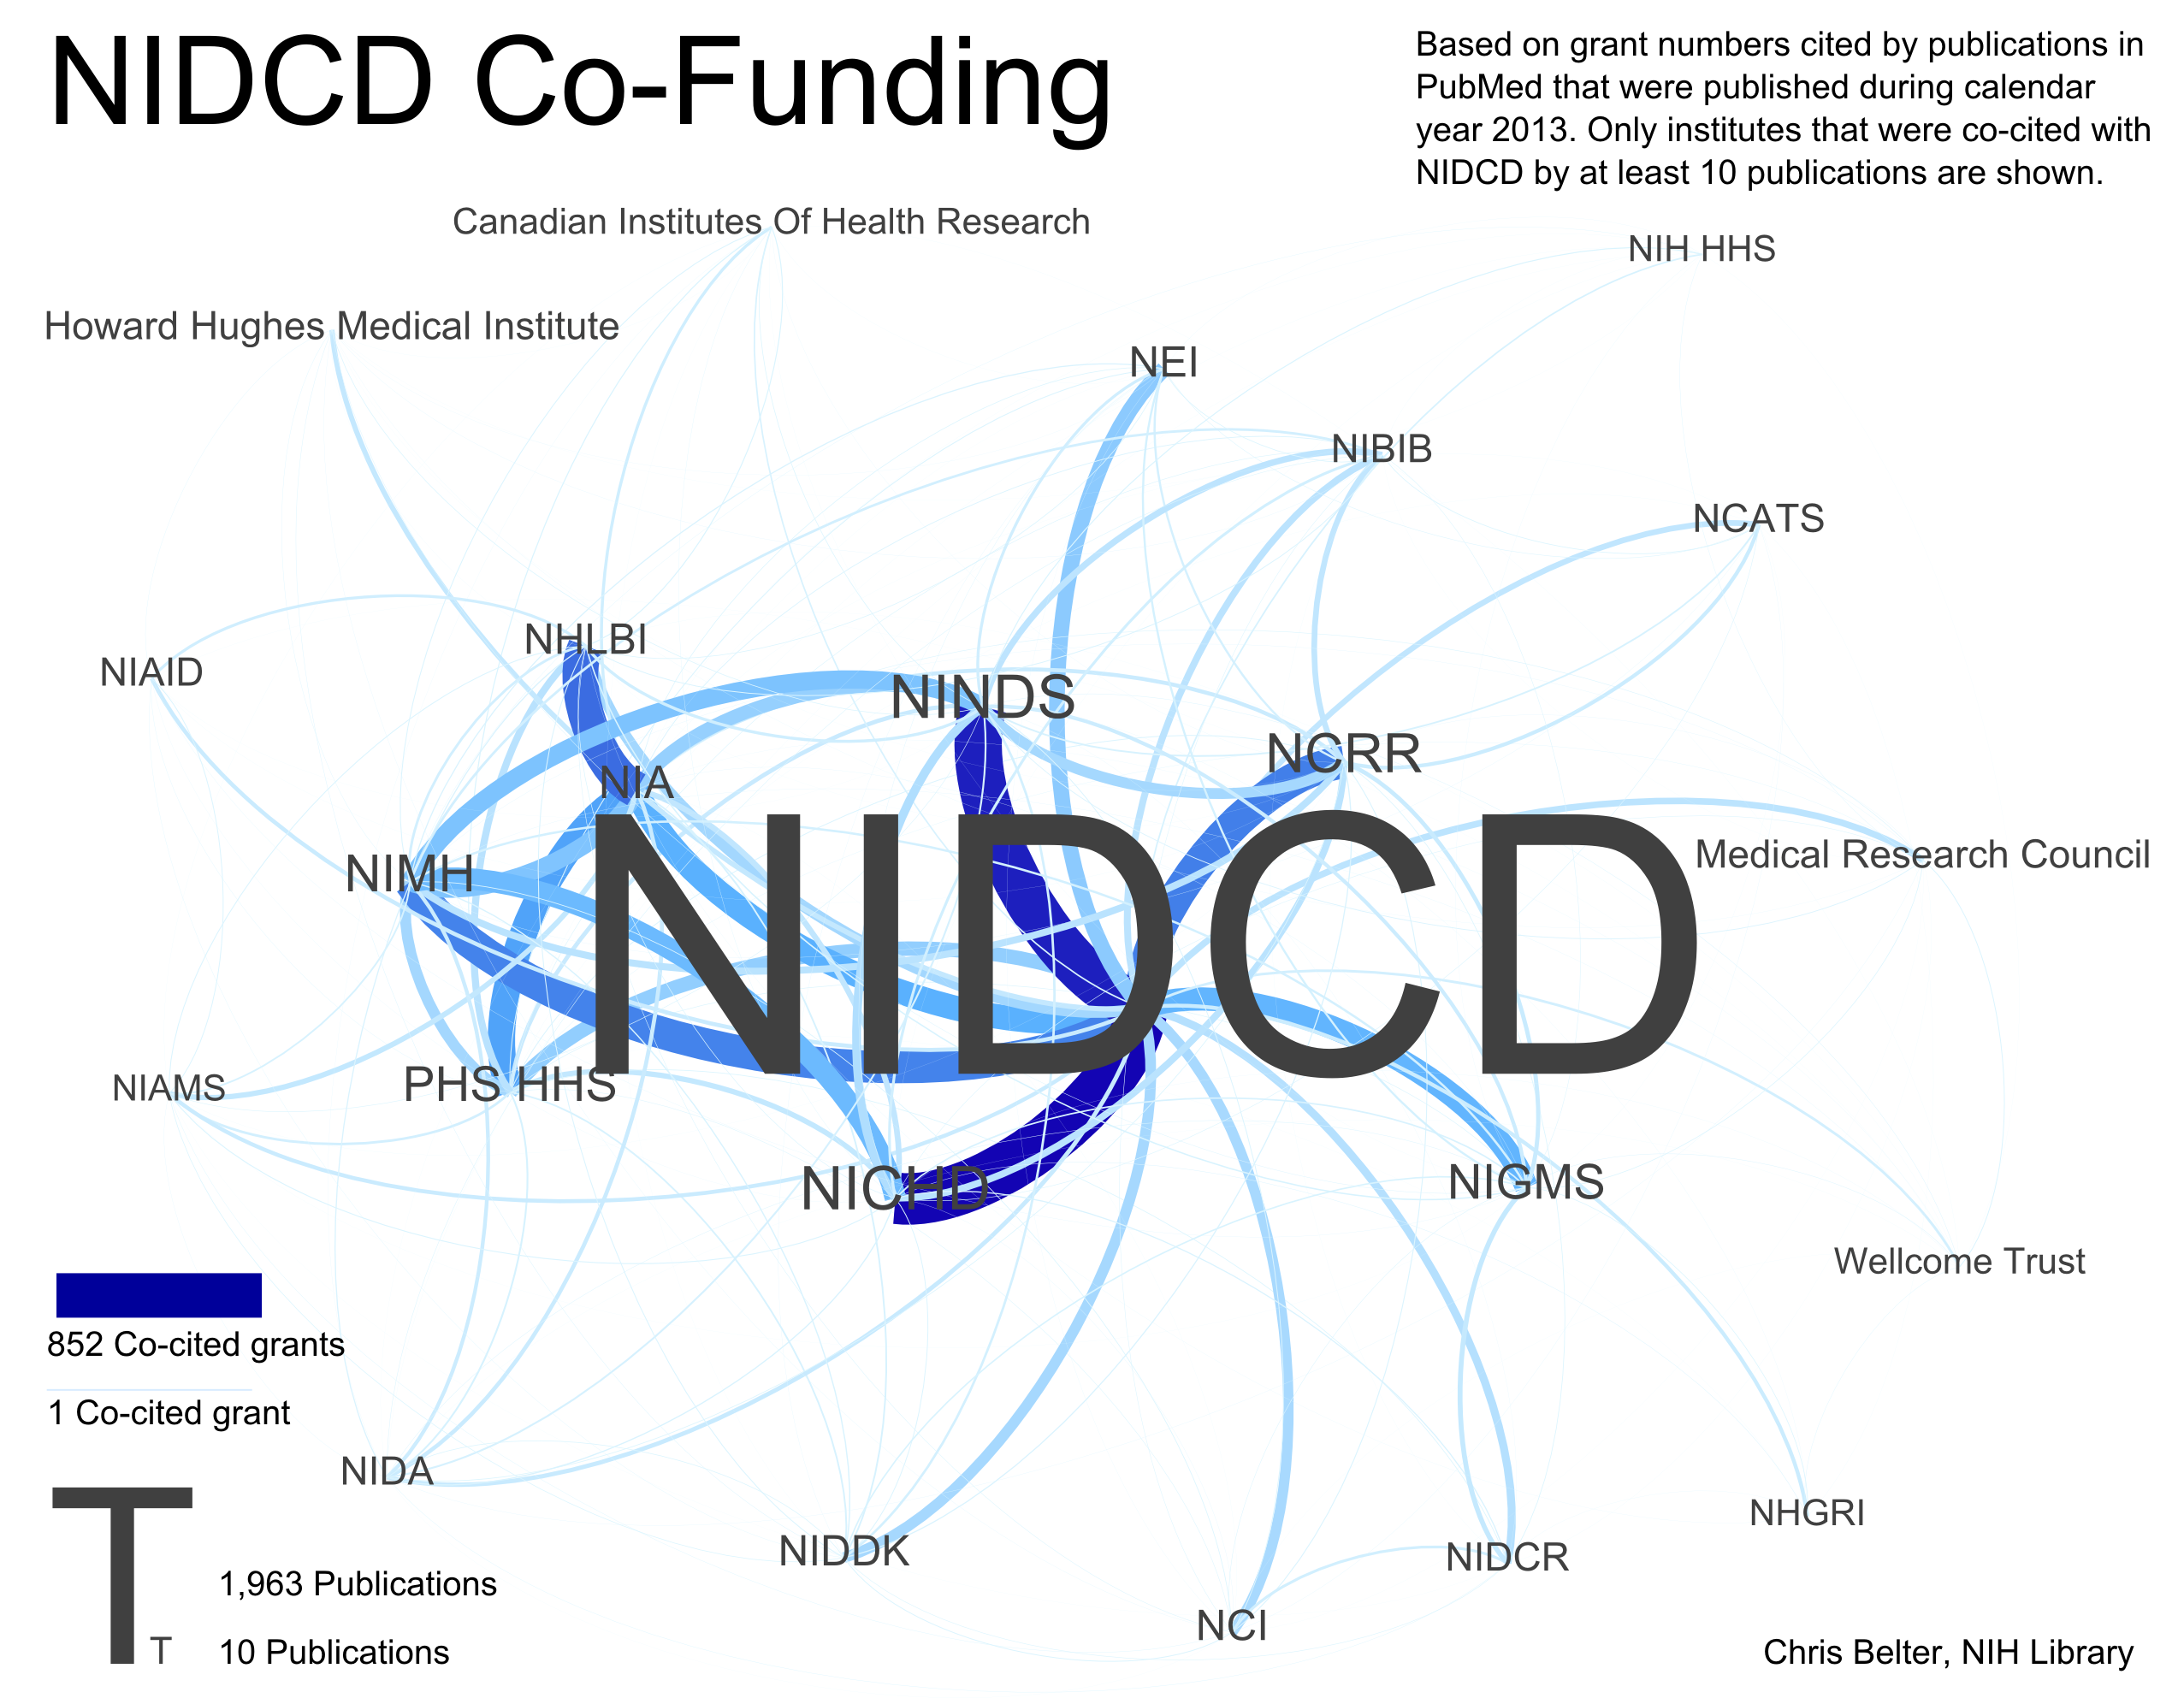 Sample infographic presenting an analysis of papers co-funded by NIDCD and other NIH institutes and centers in 2013